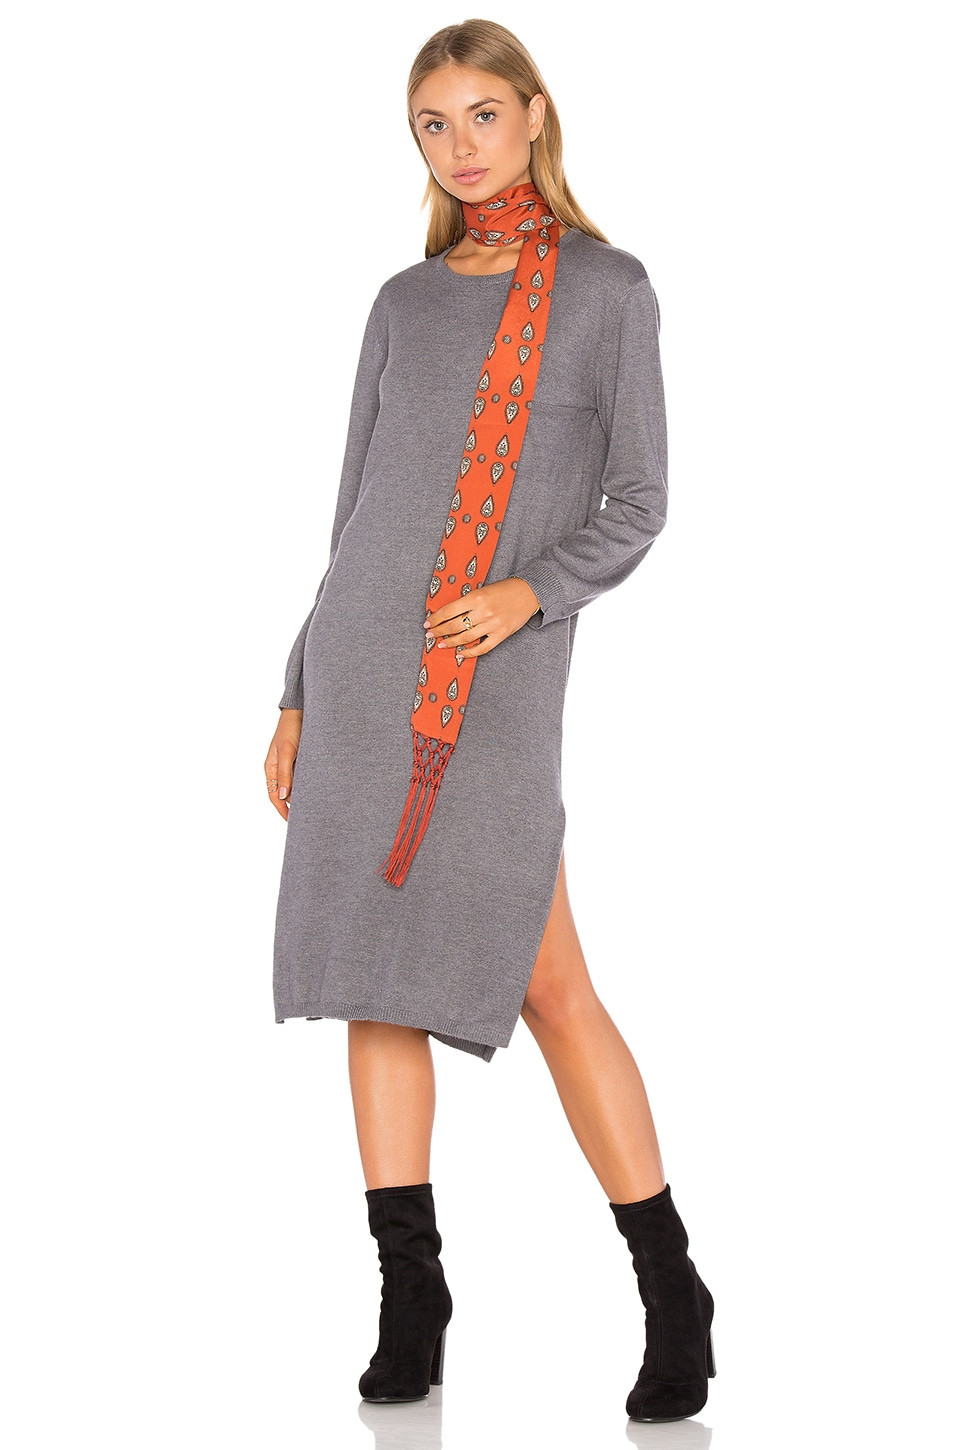 Darrien Sweater Dress by Knot Sisters